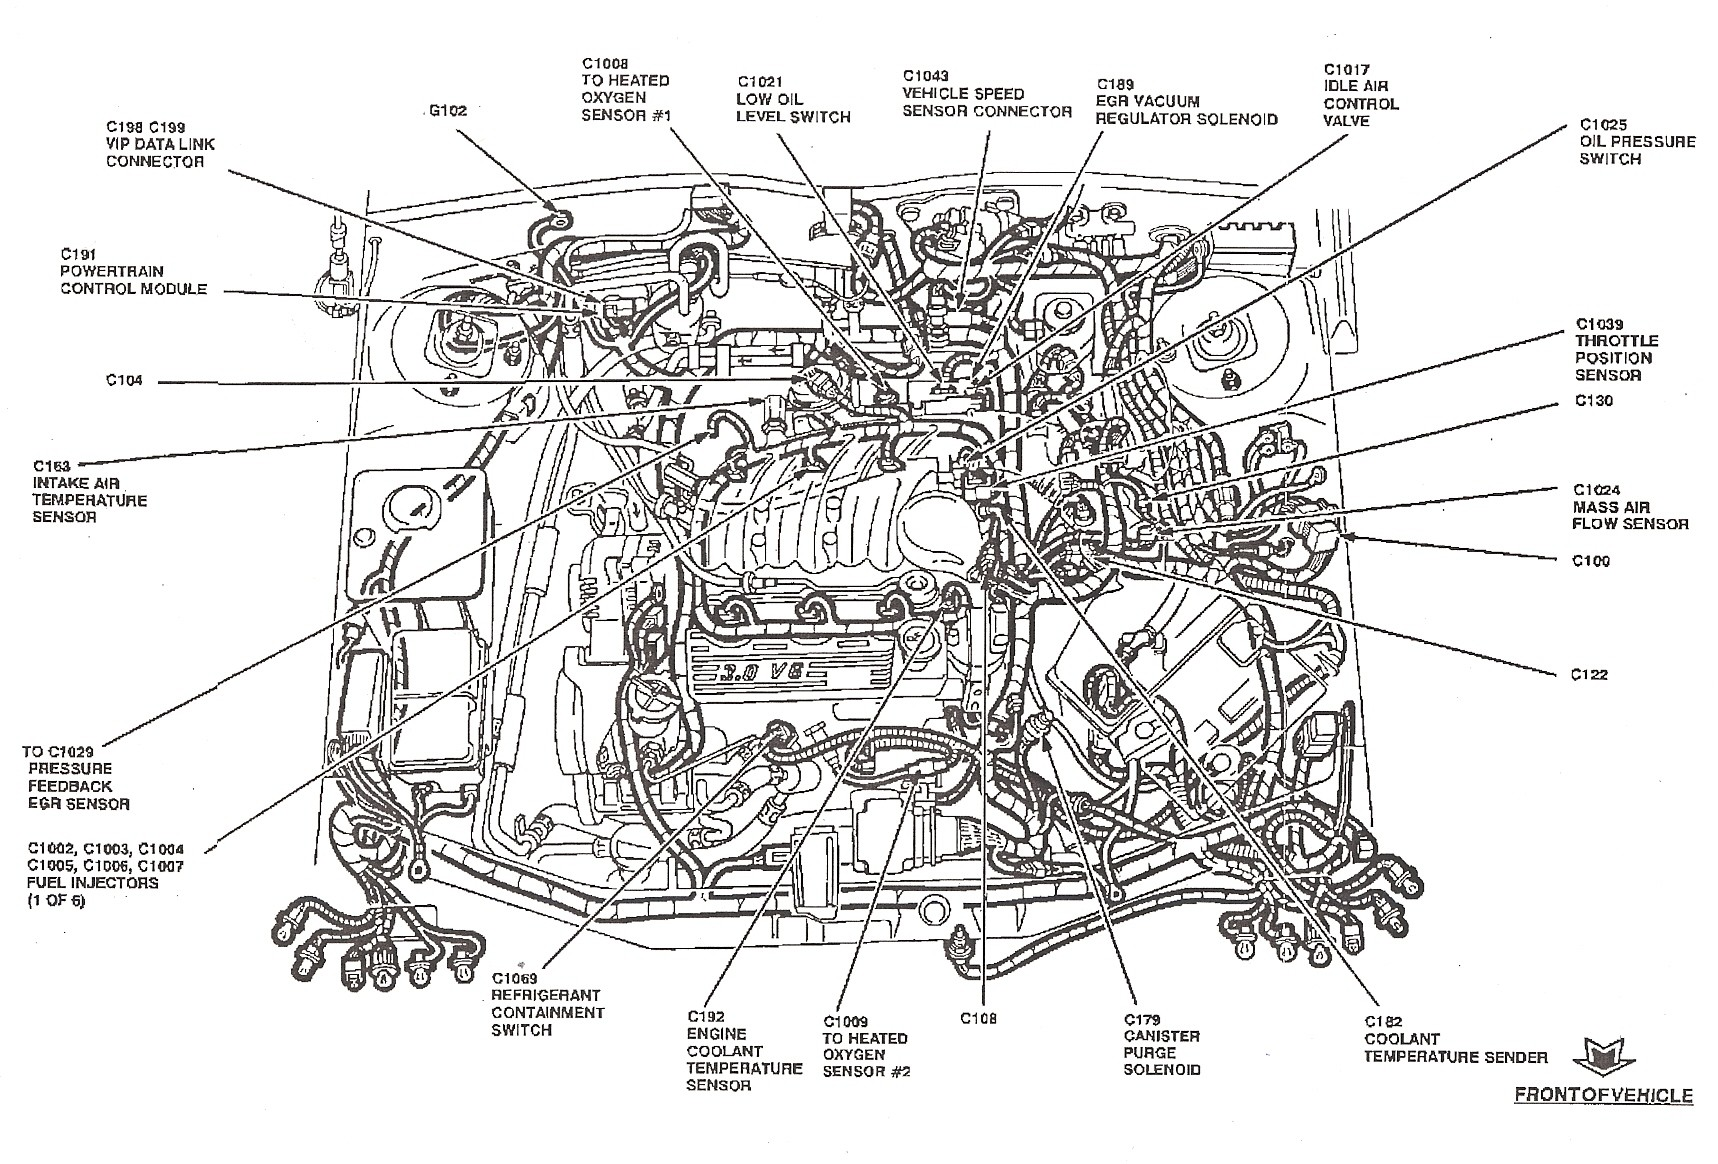 hight resolution of ford ranger 30 engine diagram lzk gallery extended wiring diagram ford 30 engine diagrams